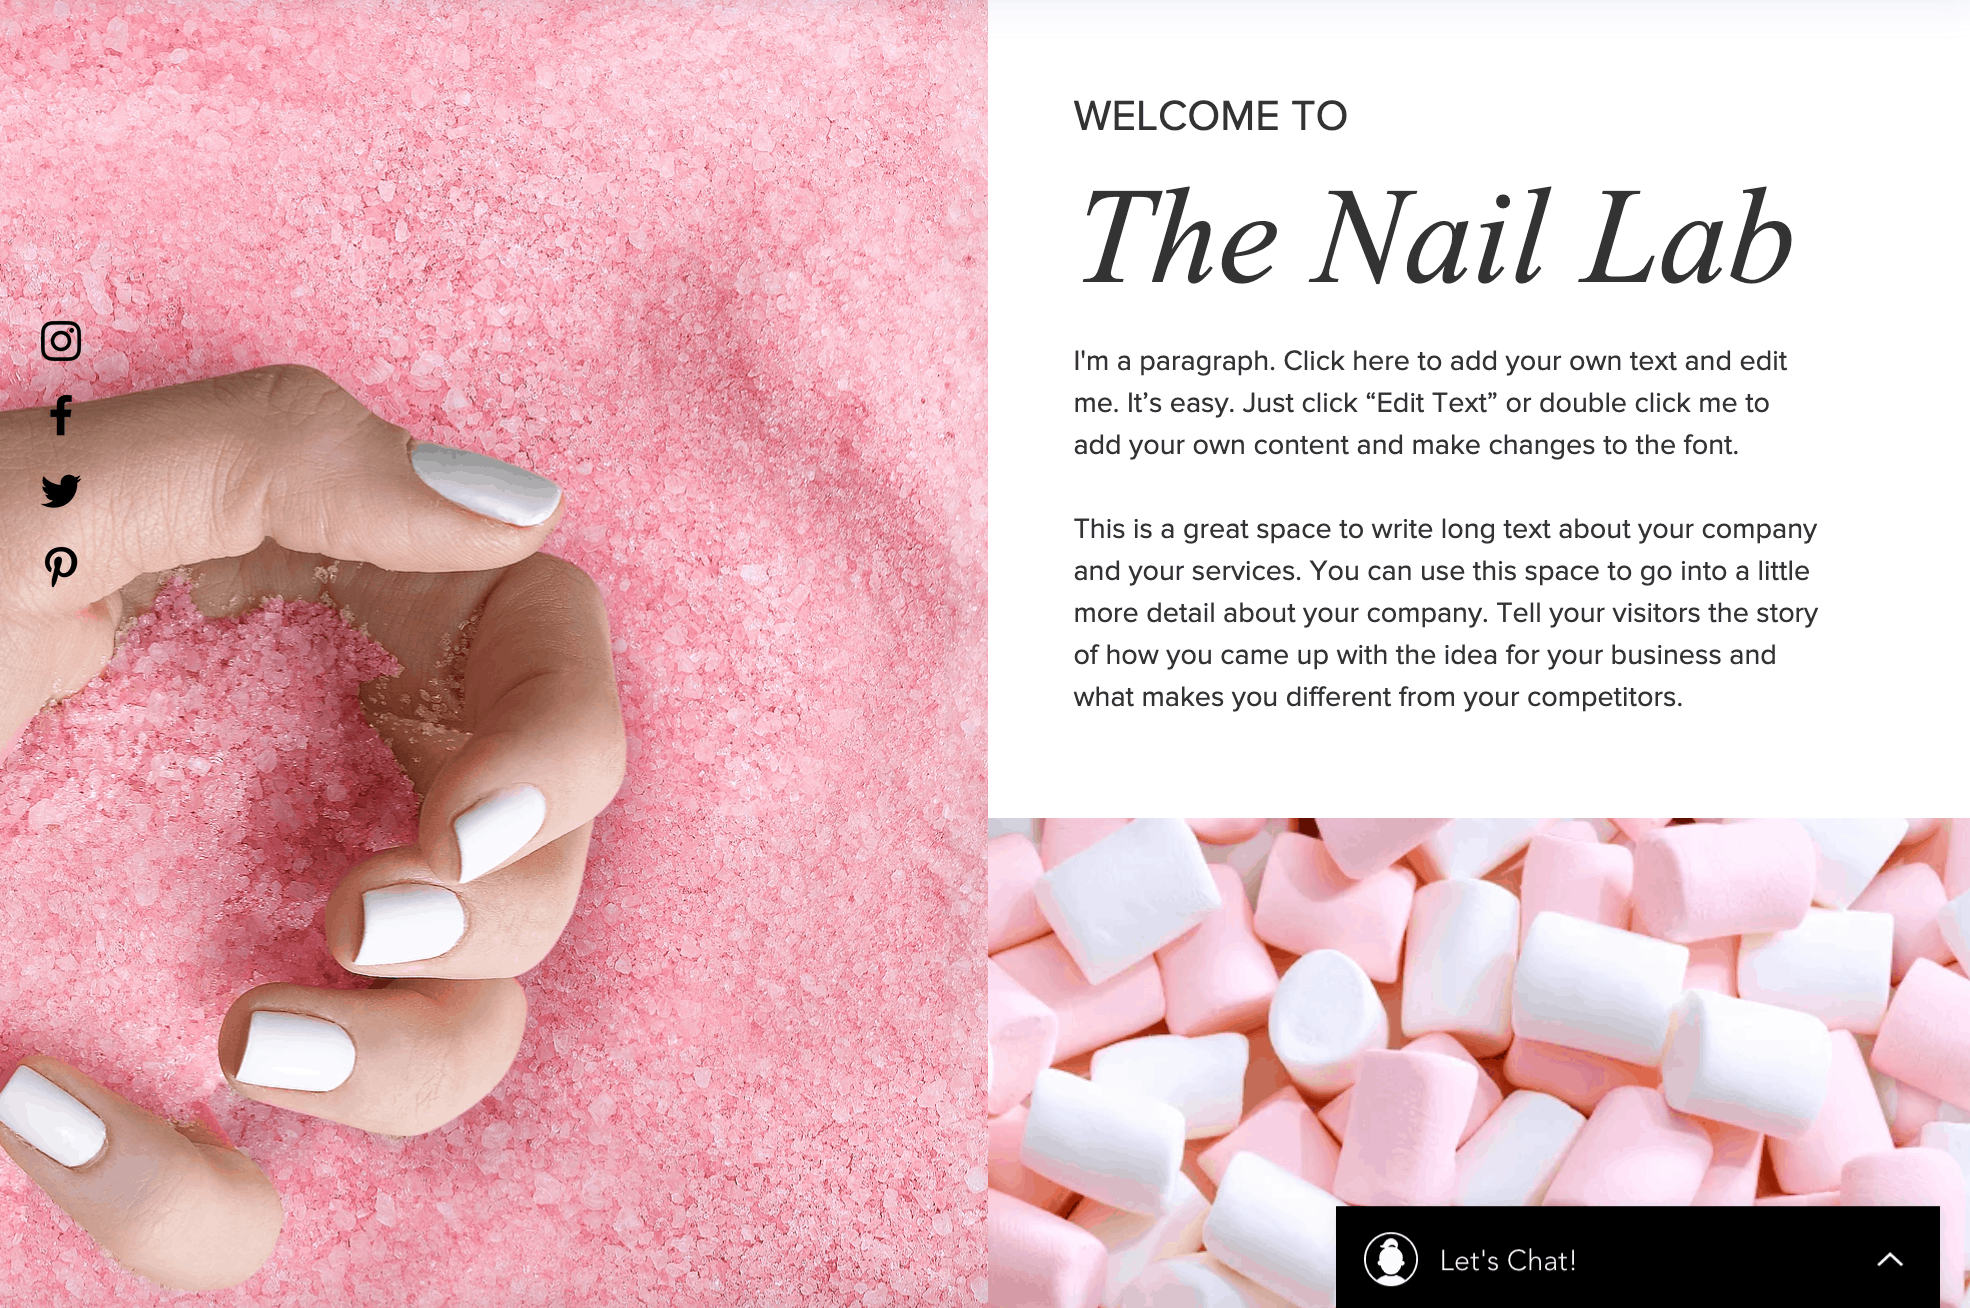 Nail salon website design